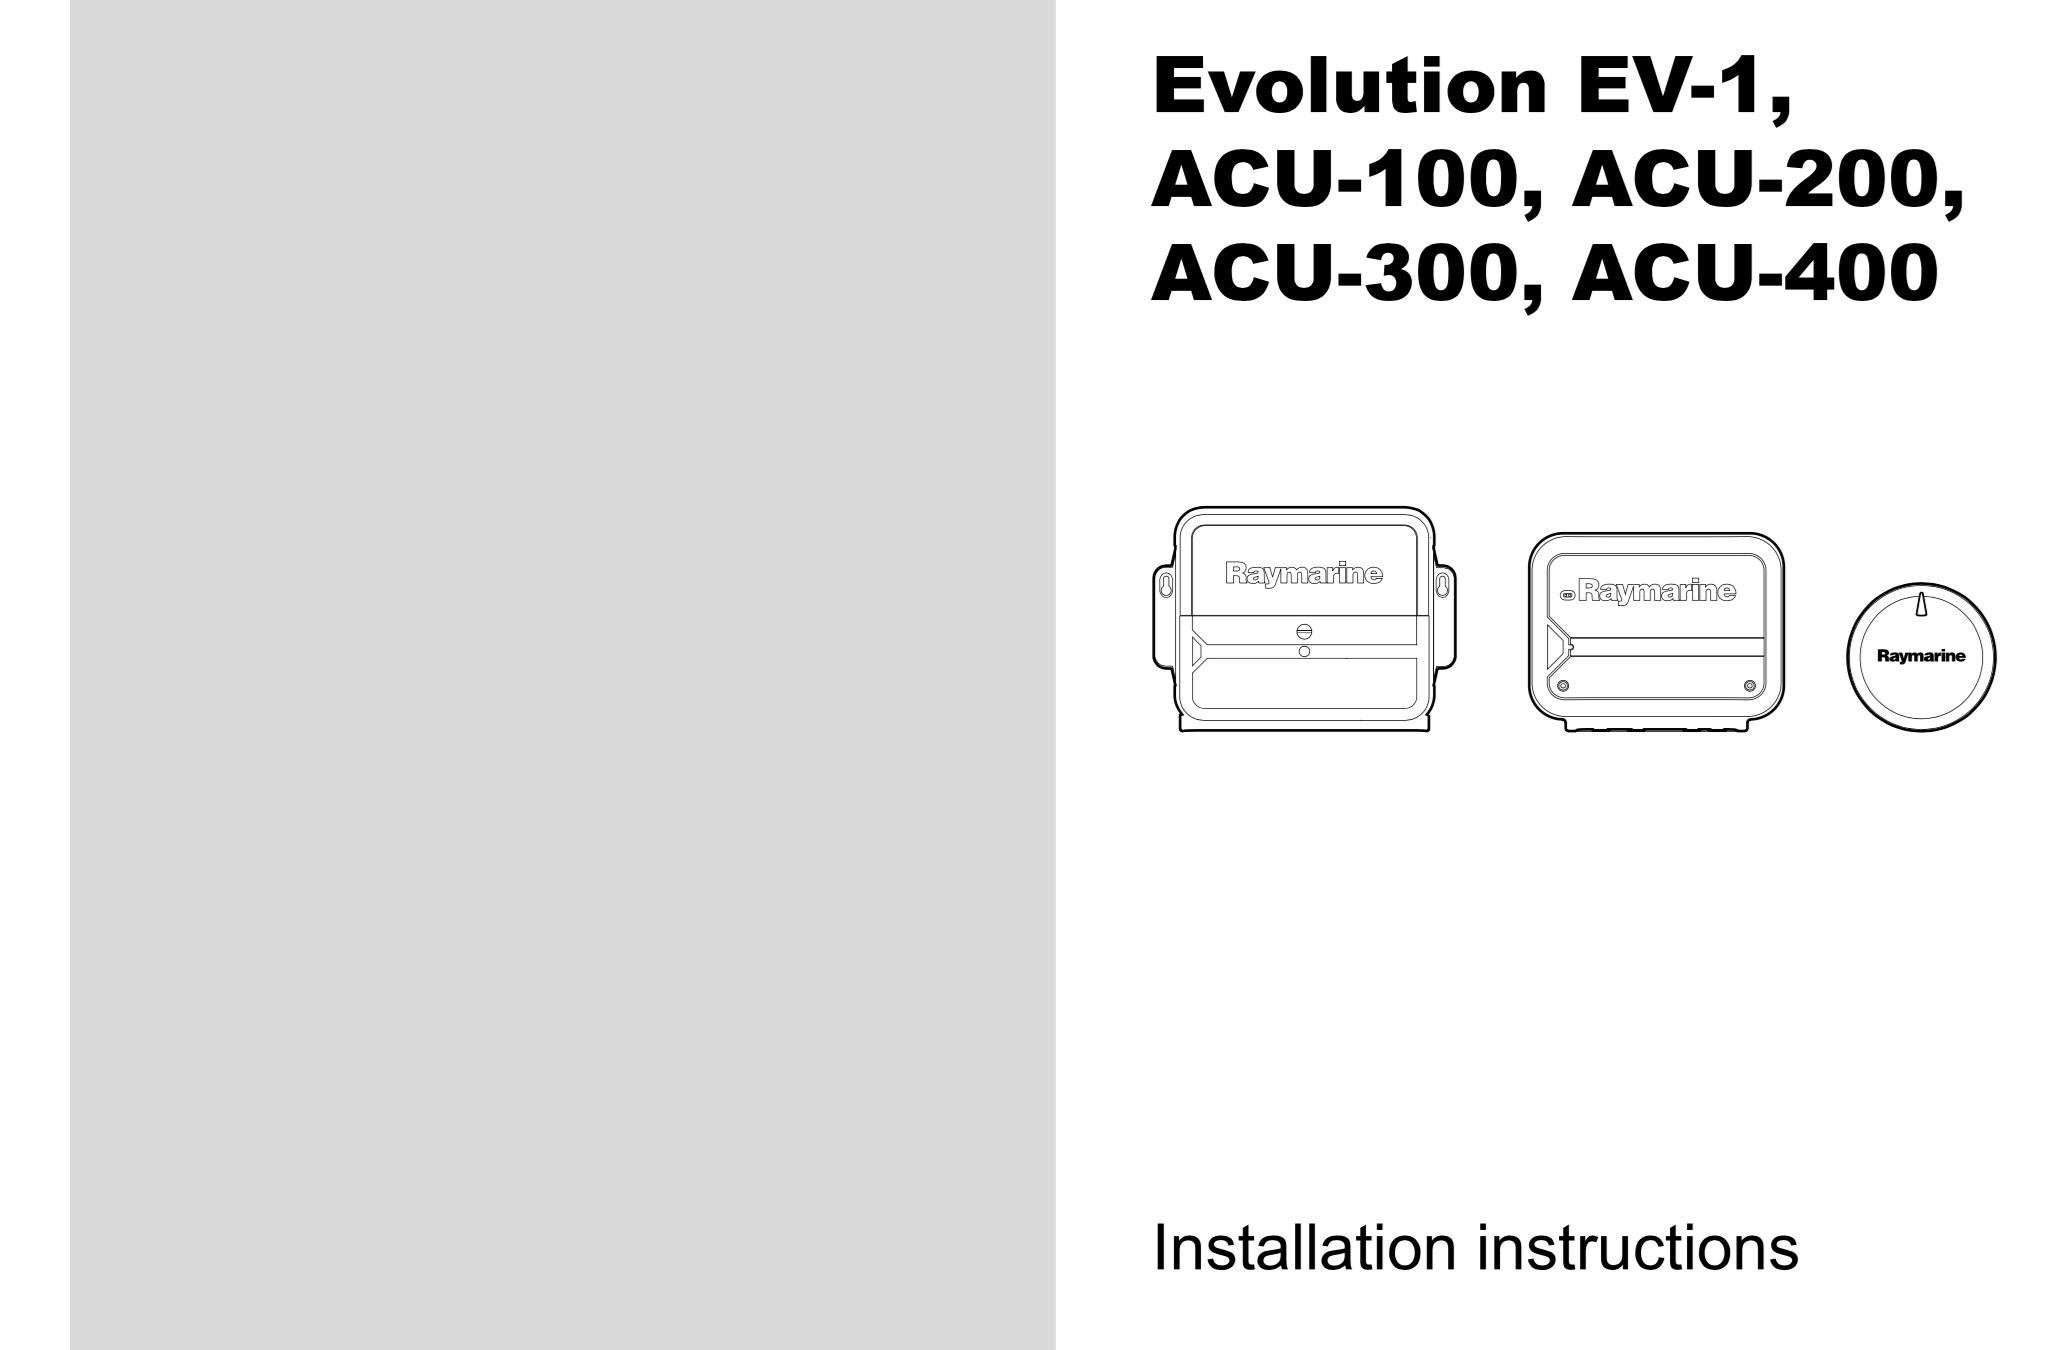 ev1 acu-100 200 300 400 installation instructions